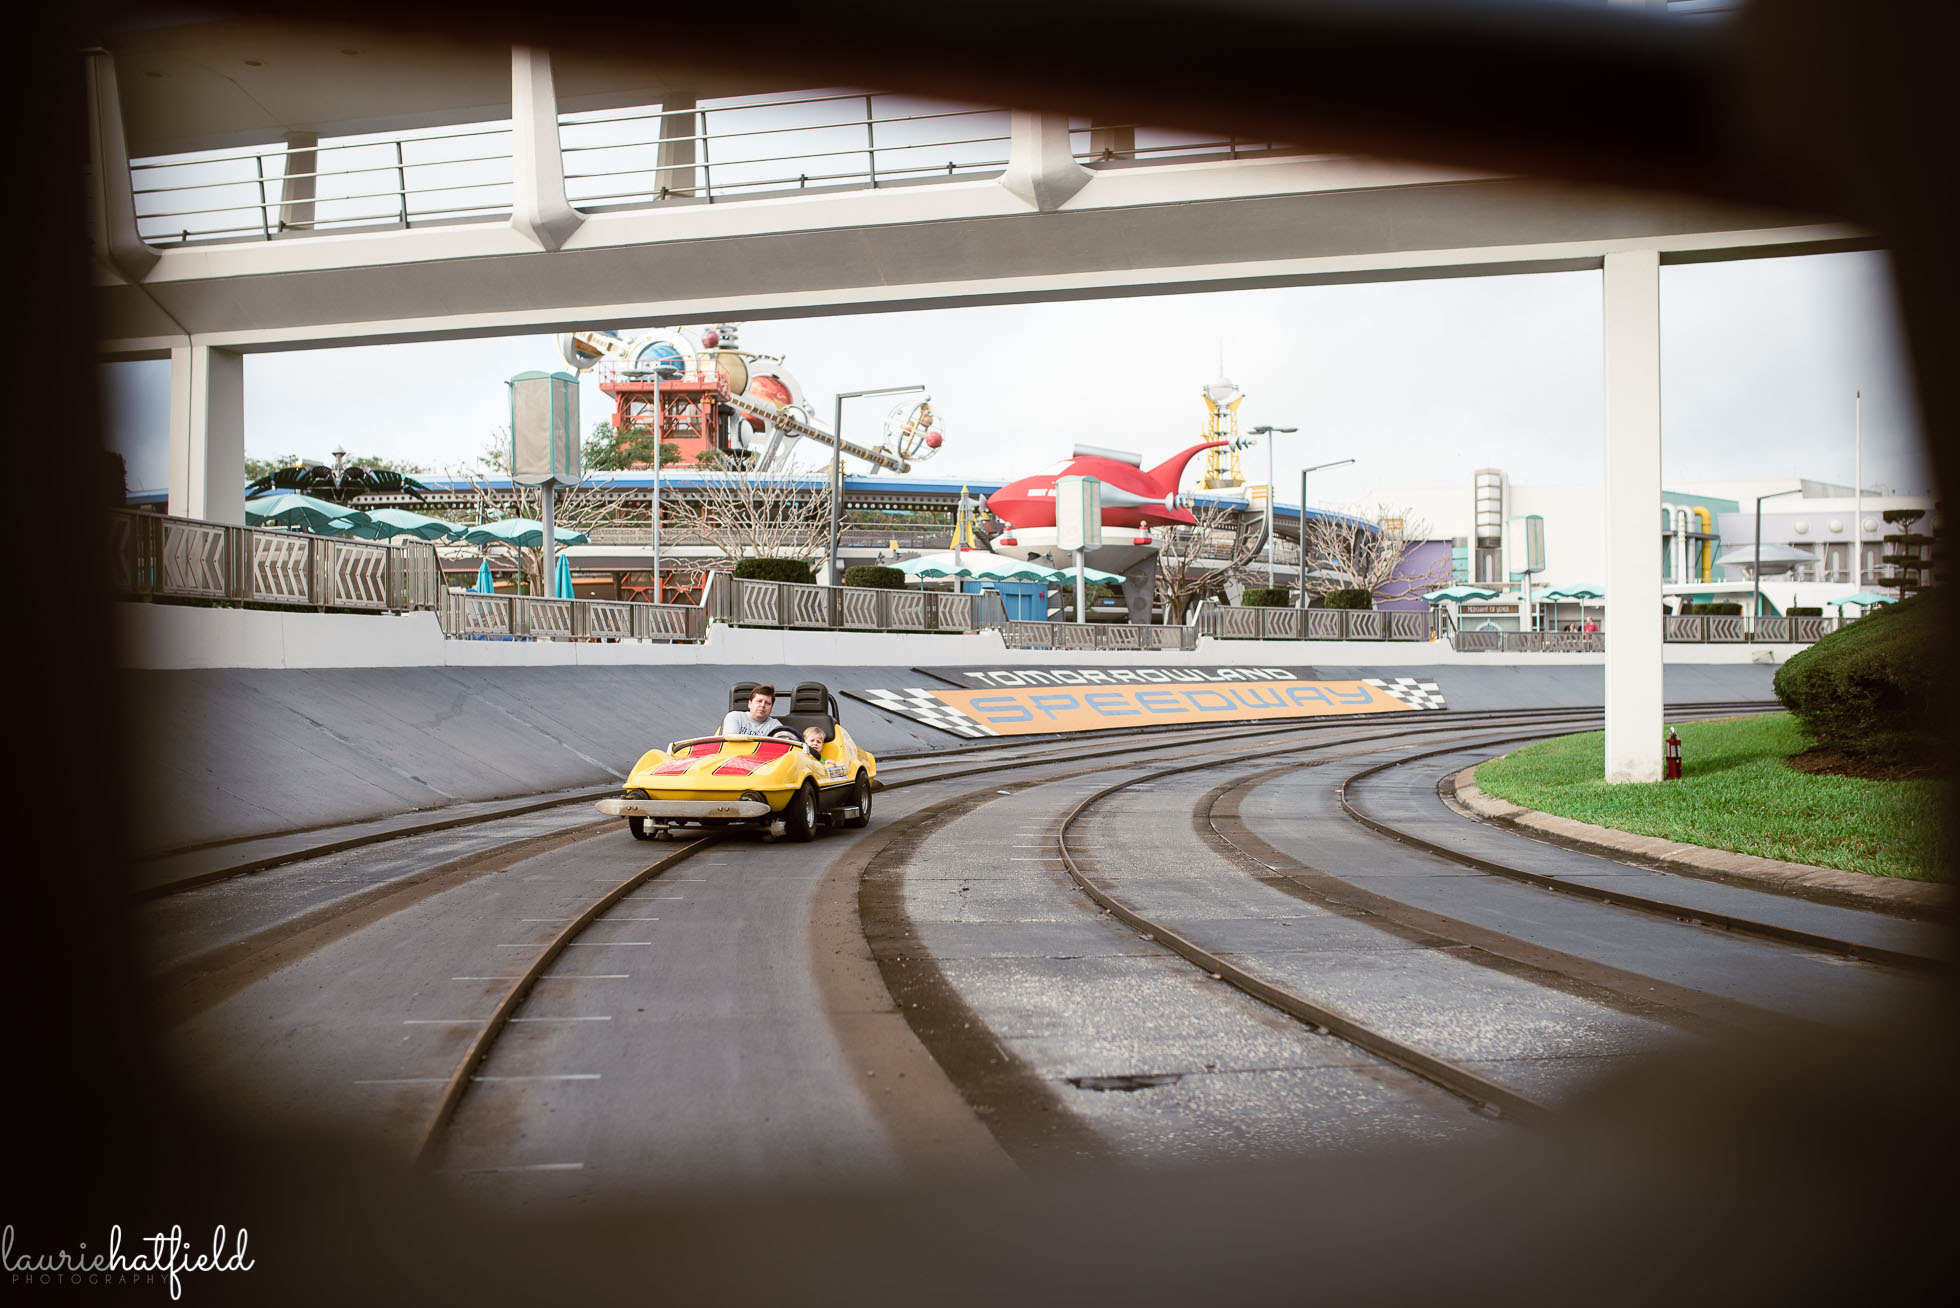 dad and son on Tomorrowland Speedway at Disney World